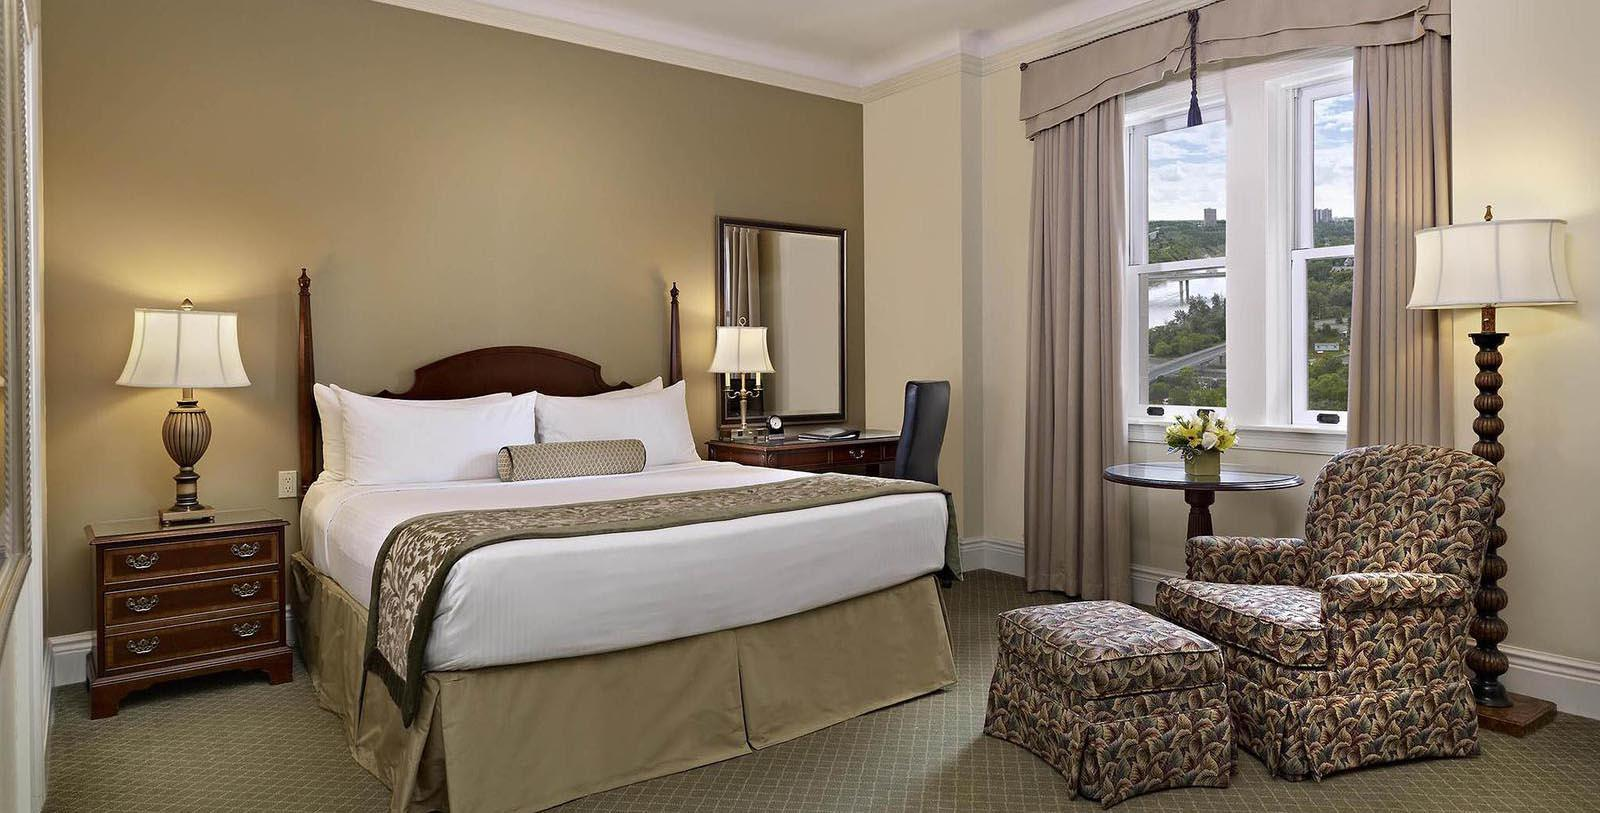 Image of guestroom Fairmont Hotel Macdonald, 1915, Member of Historic Hotels Worldwide, in Edmonton, Canada,Accommodations